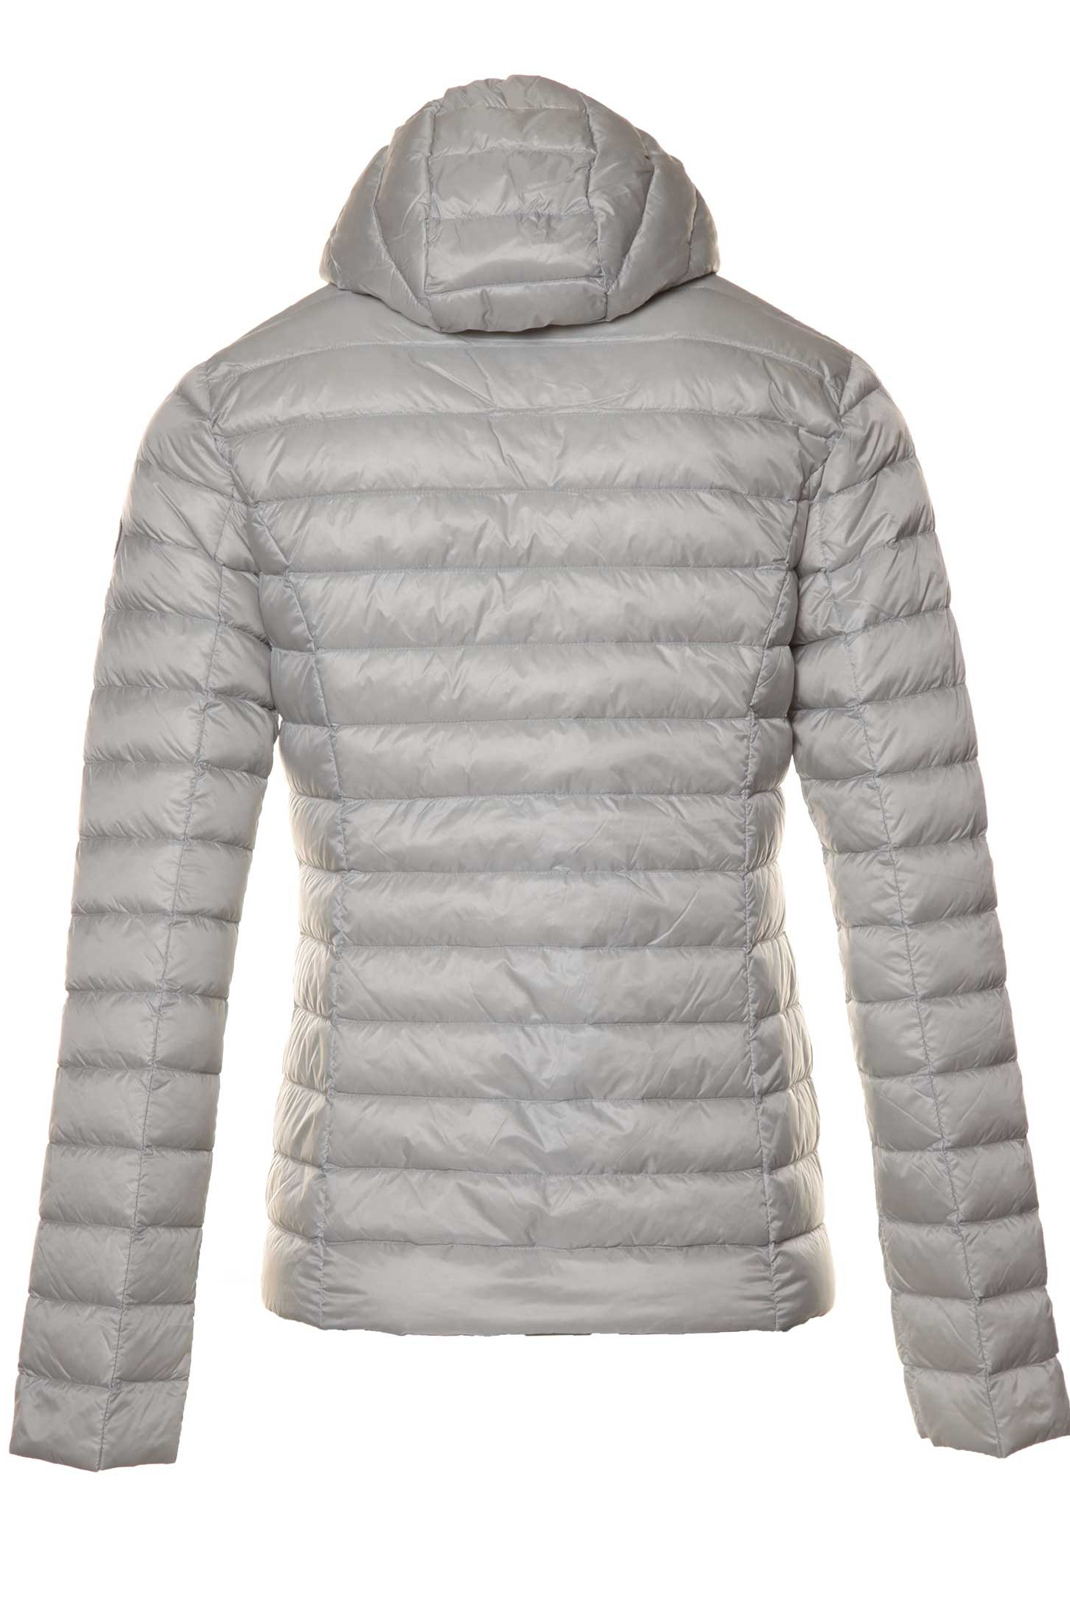 Blouson  Just over the top CLOE 522 GRIS CLAIR